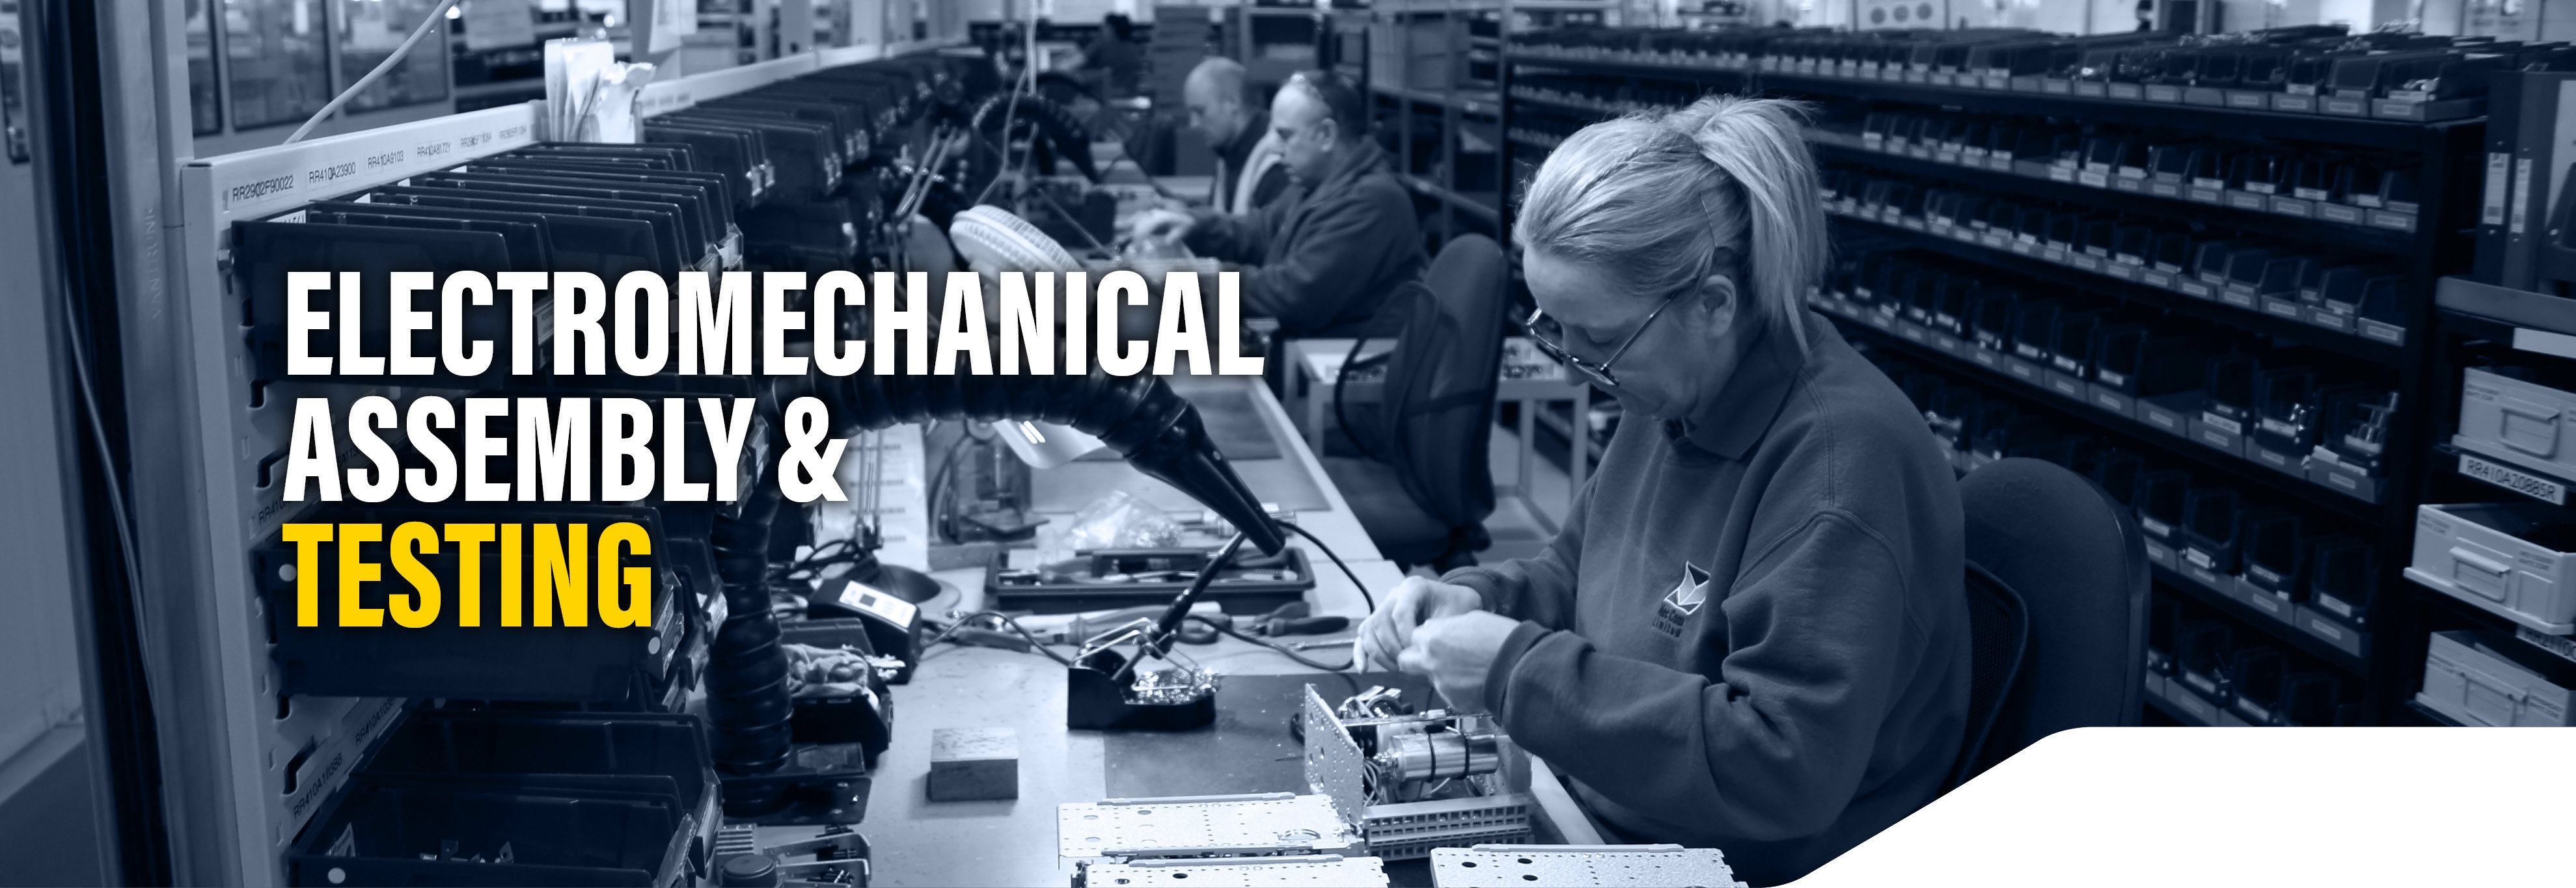 Electromechanical assembly and test